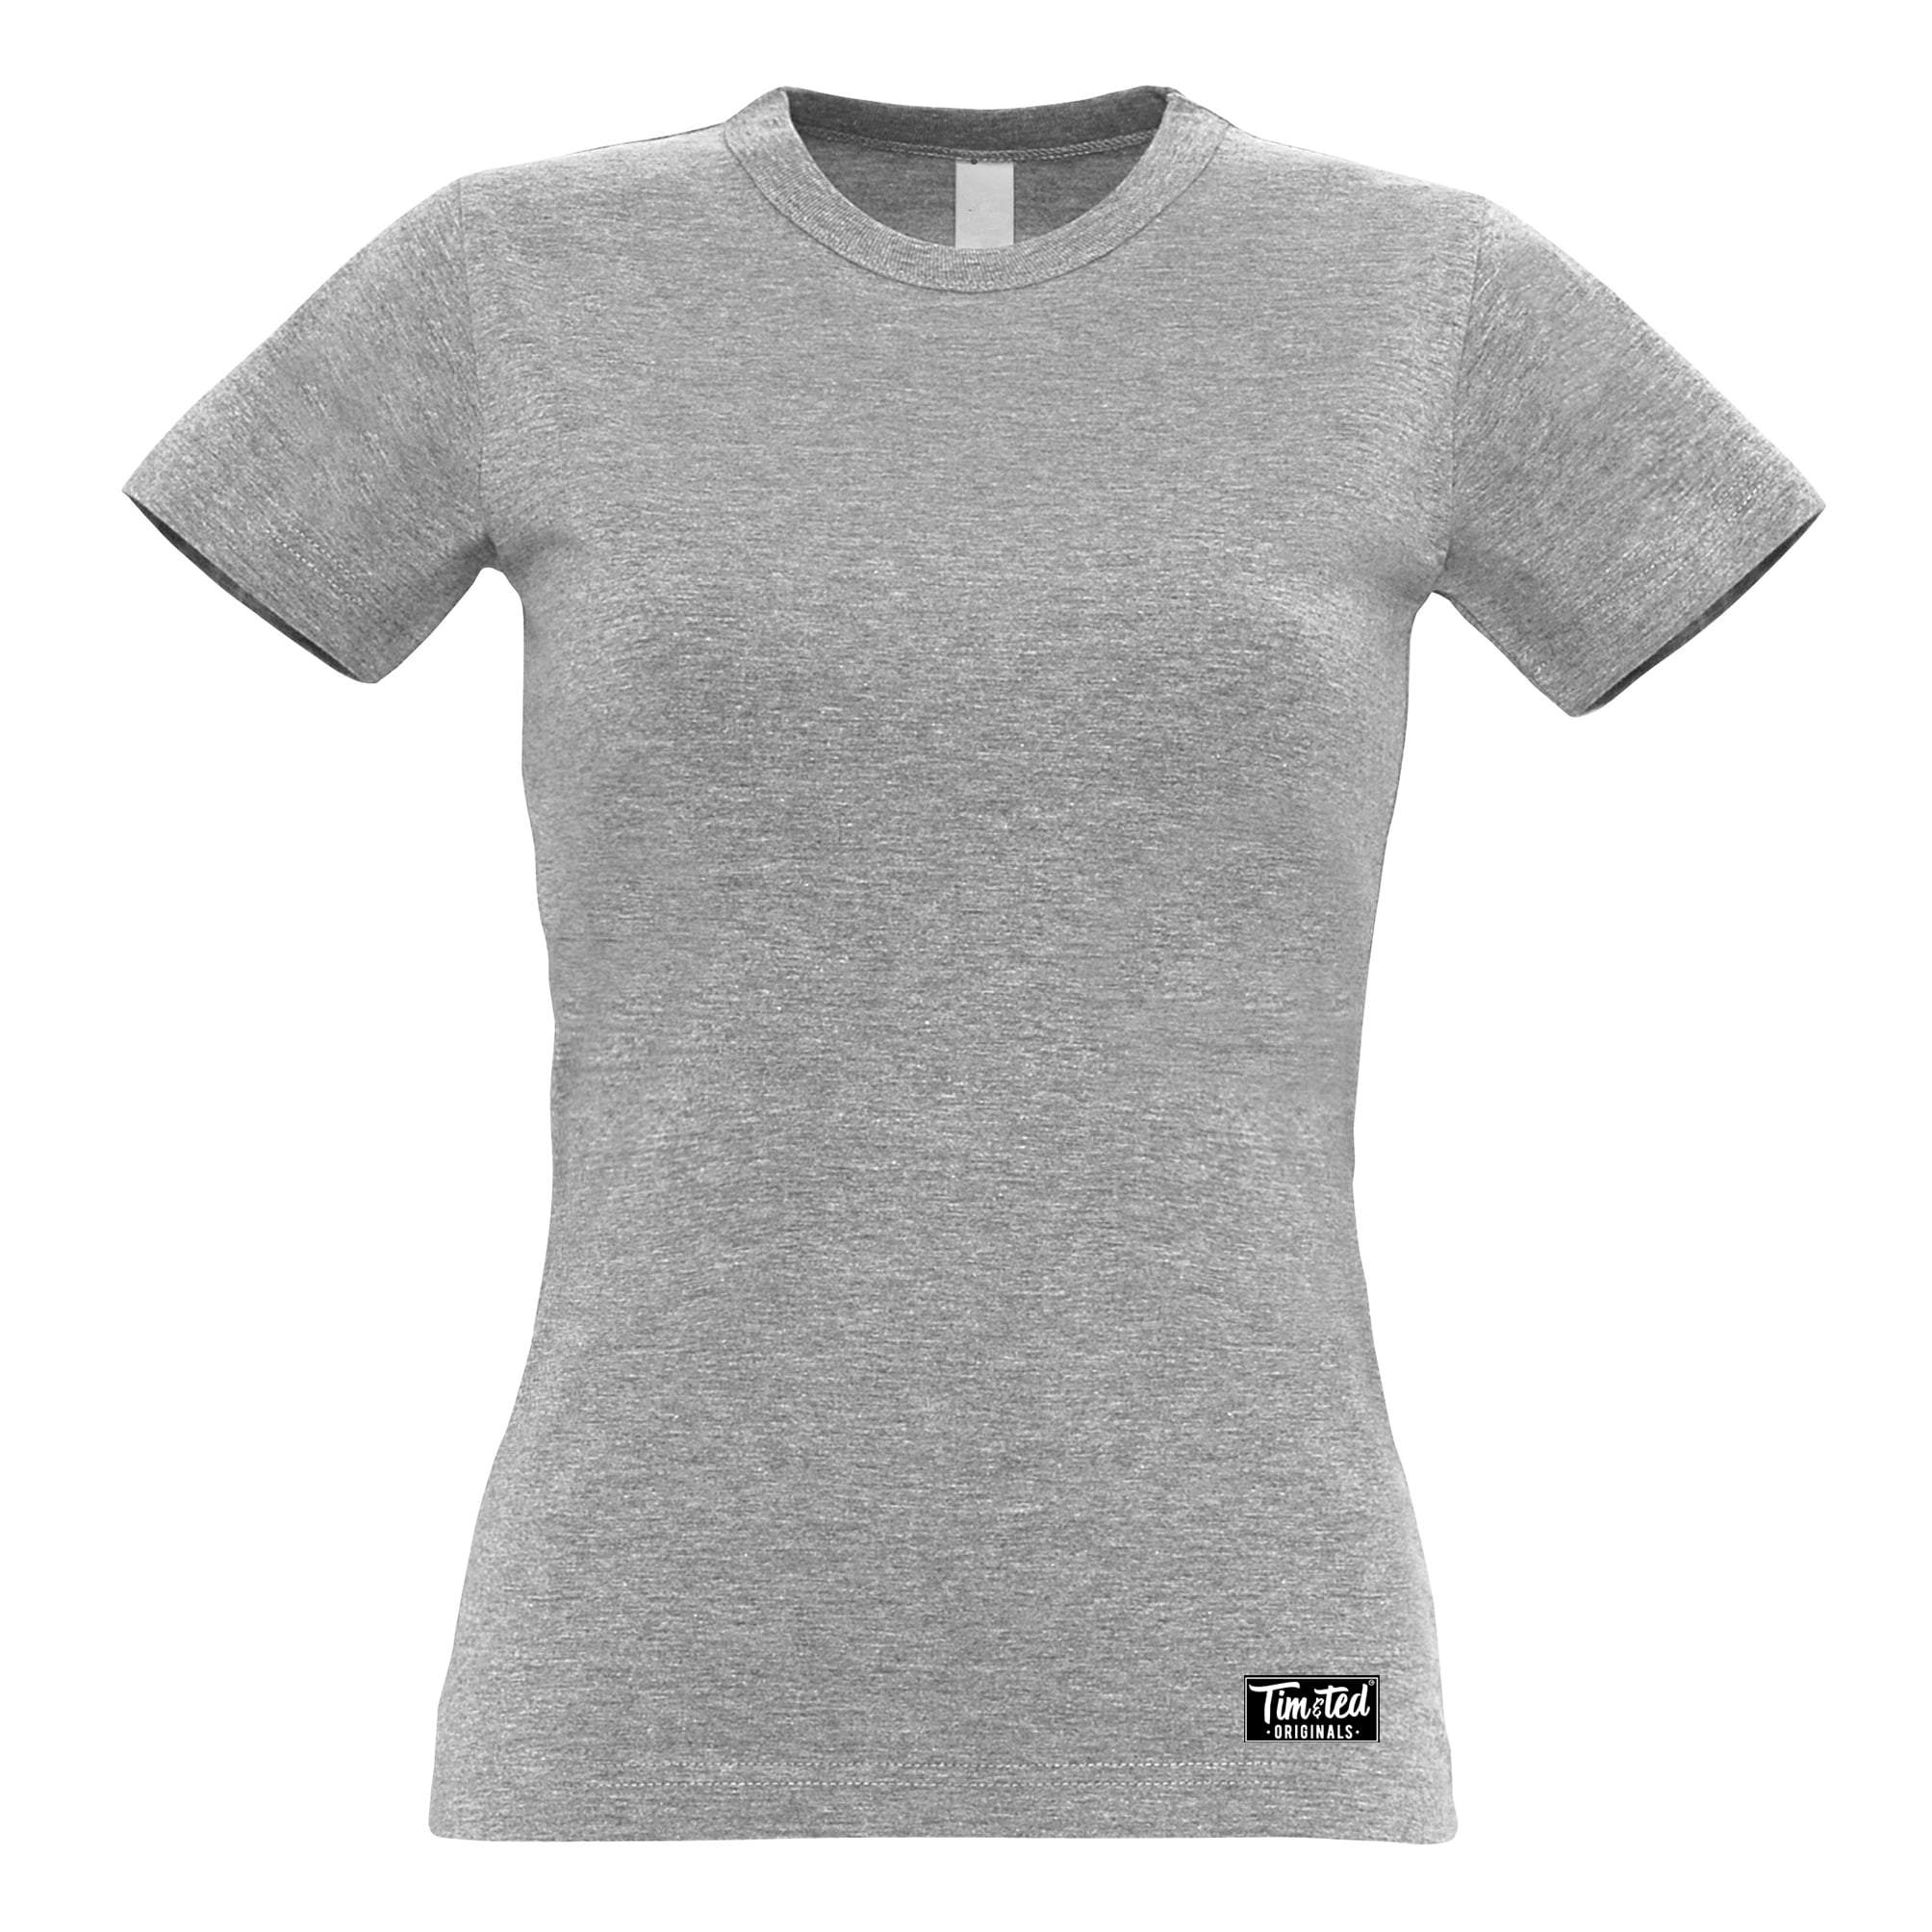 Tim and Ted Logo Premium Plain Womens T Shirt Apparel